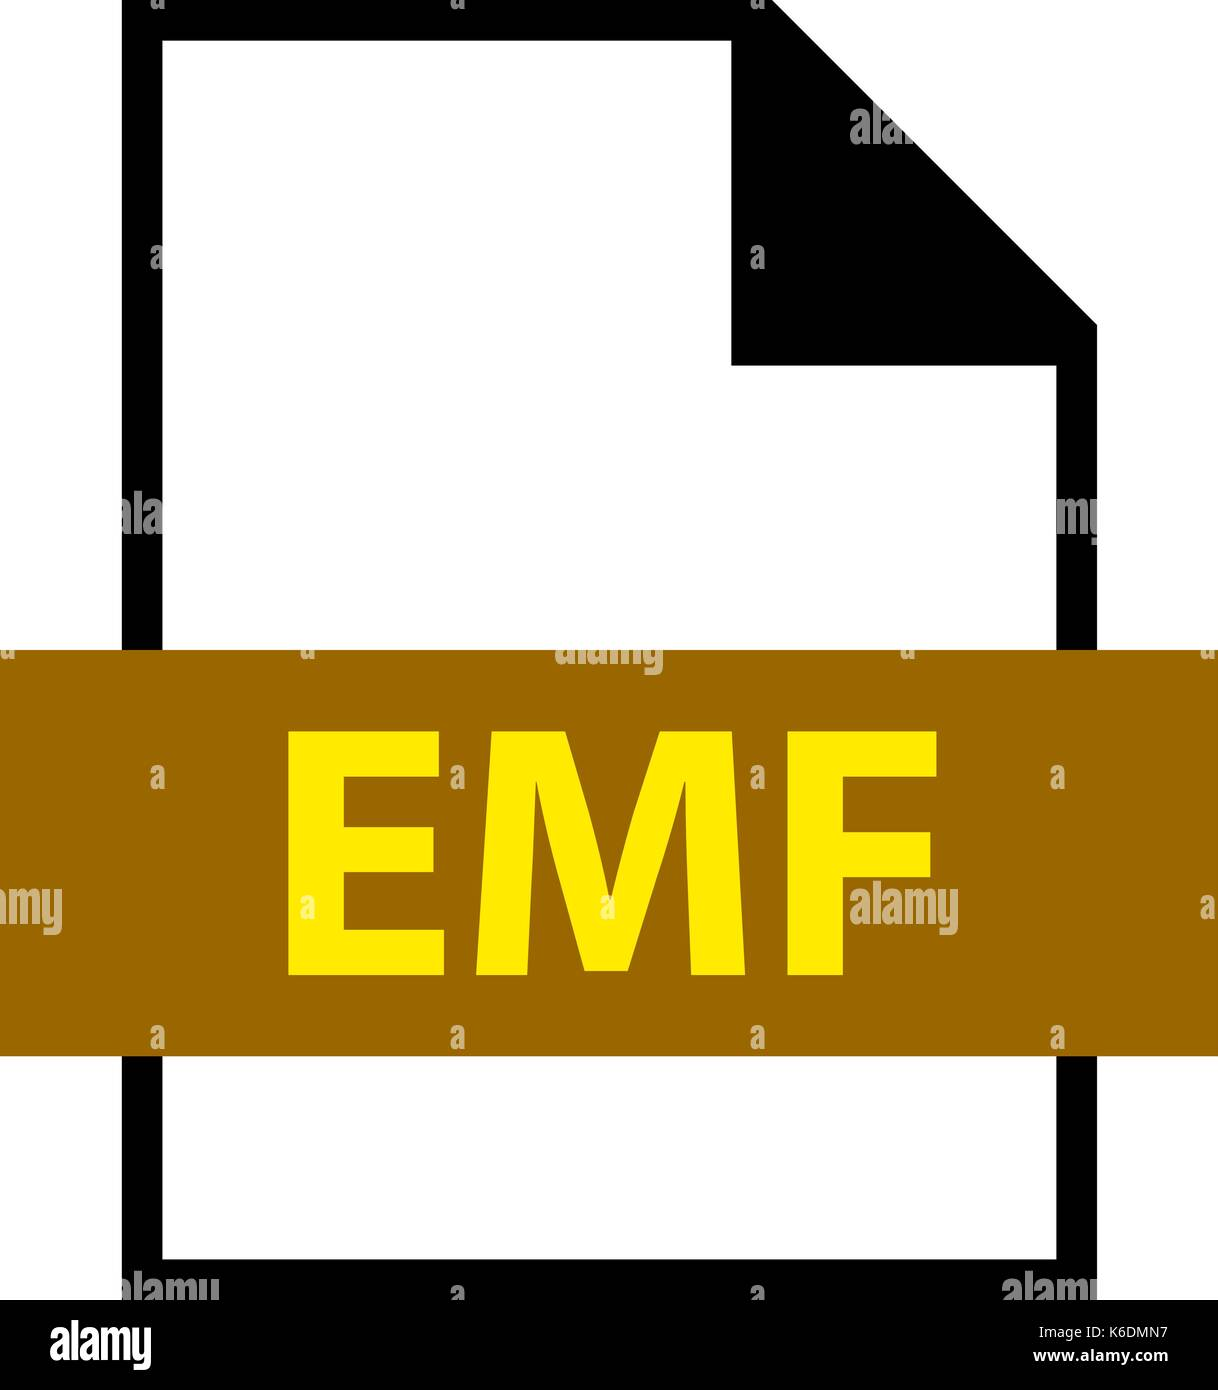 Use it in all your designs. Filename extension icon EMF Enhanced MetaFile in flat style. Quick and easy recolorable shape. Vector illustration - Stock Image